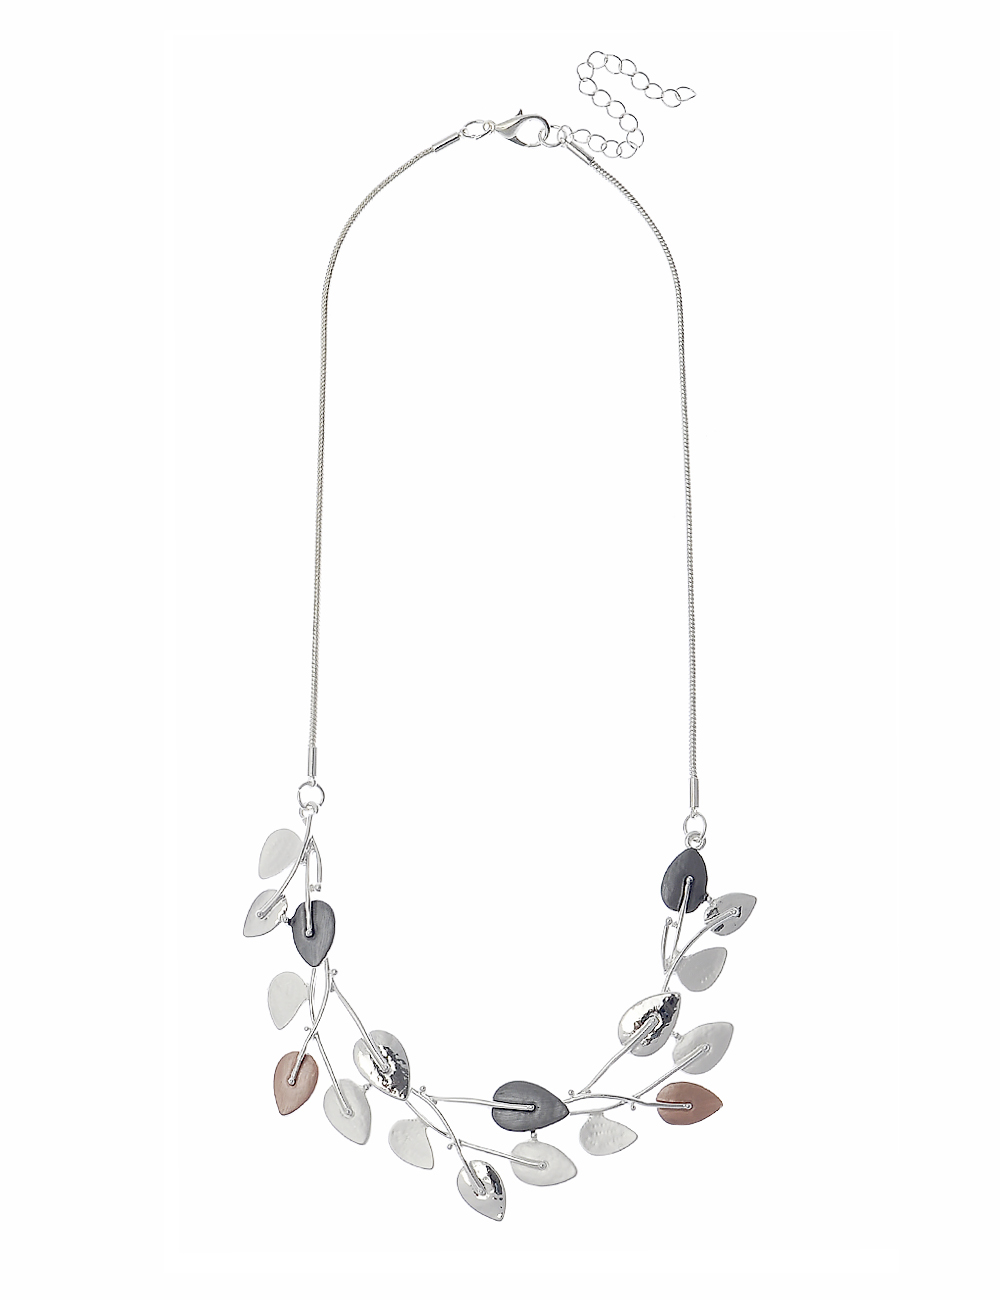 3 Tone Statement Necklace with Beautiful Leaf Design